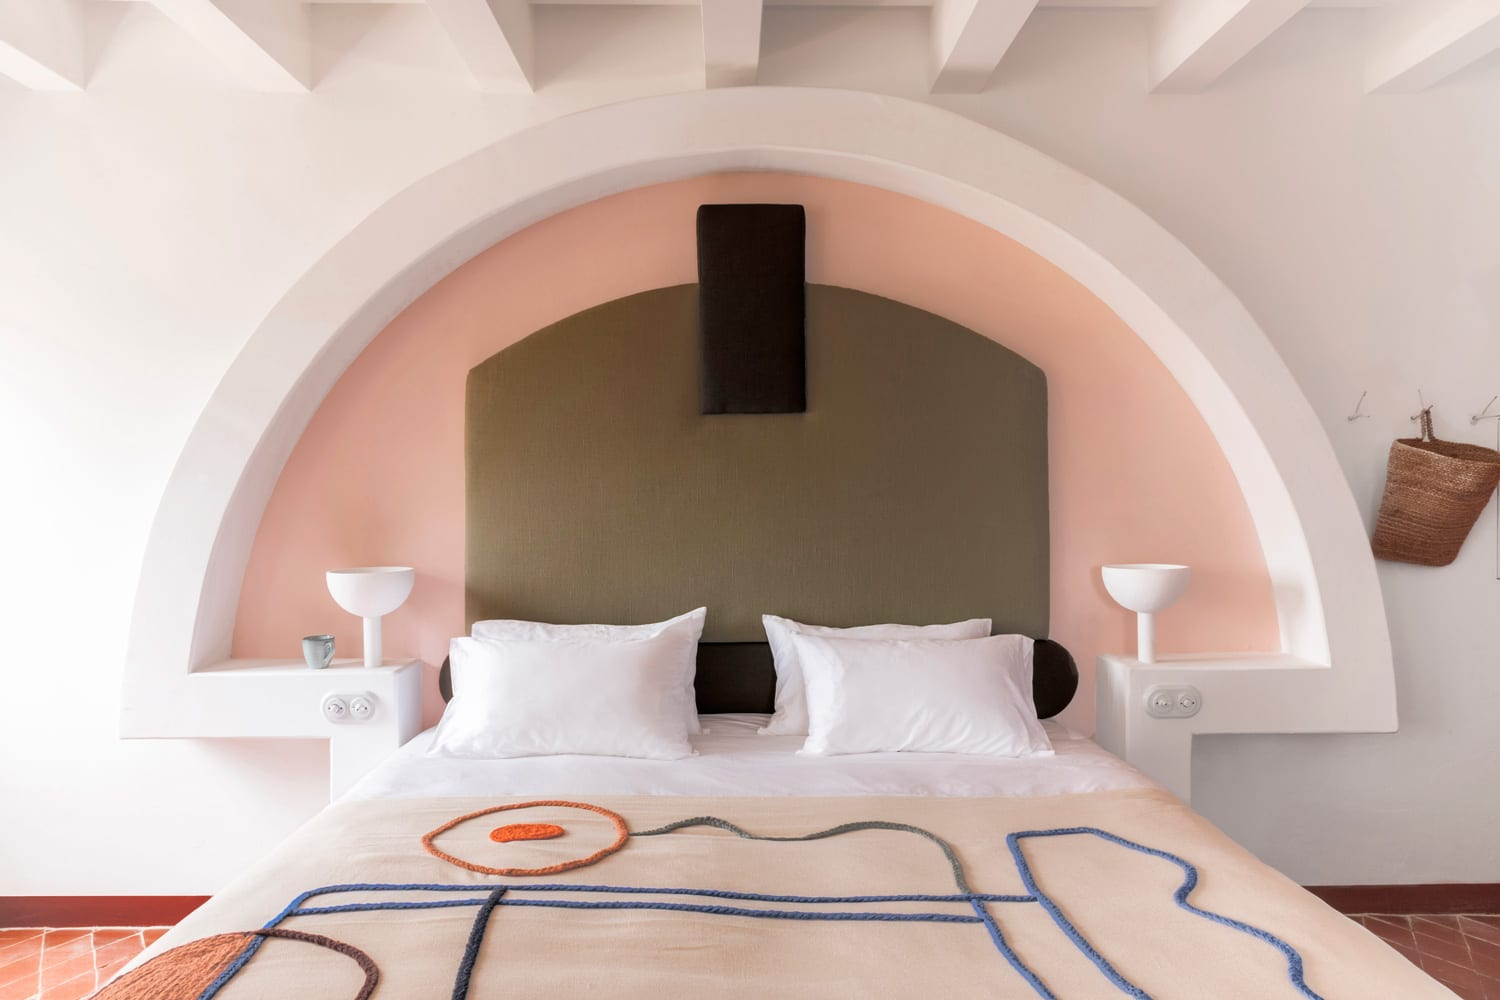 Menorca Experimental Hotel in Spain by Dorothee Meilichzon | Yellowtrace